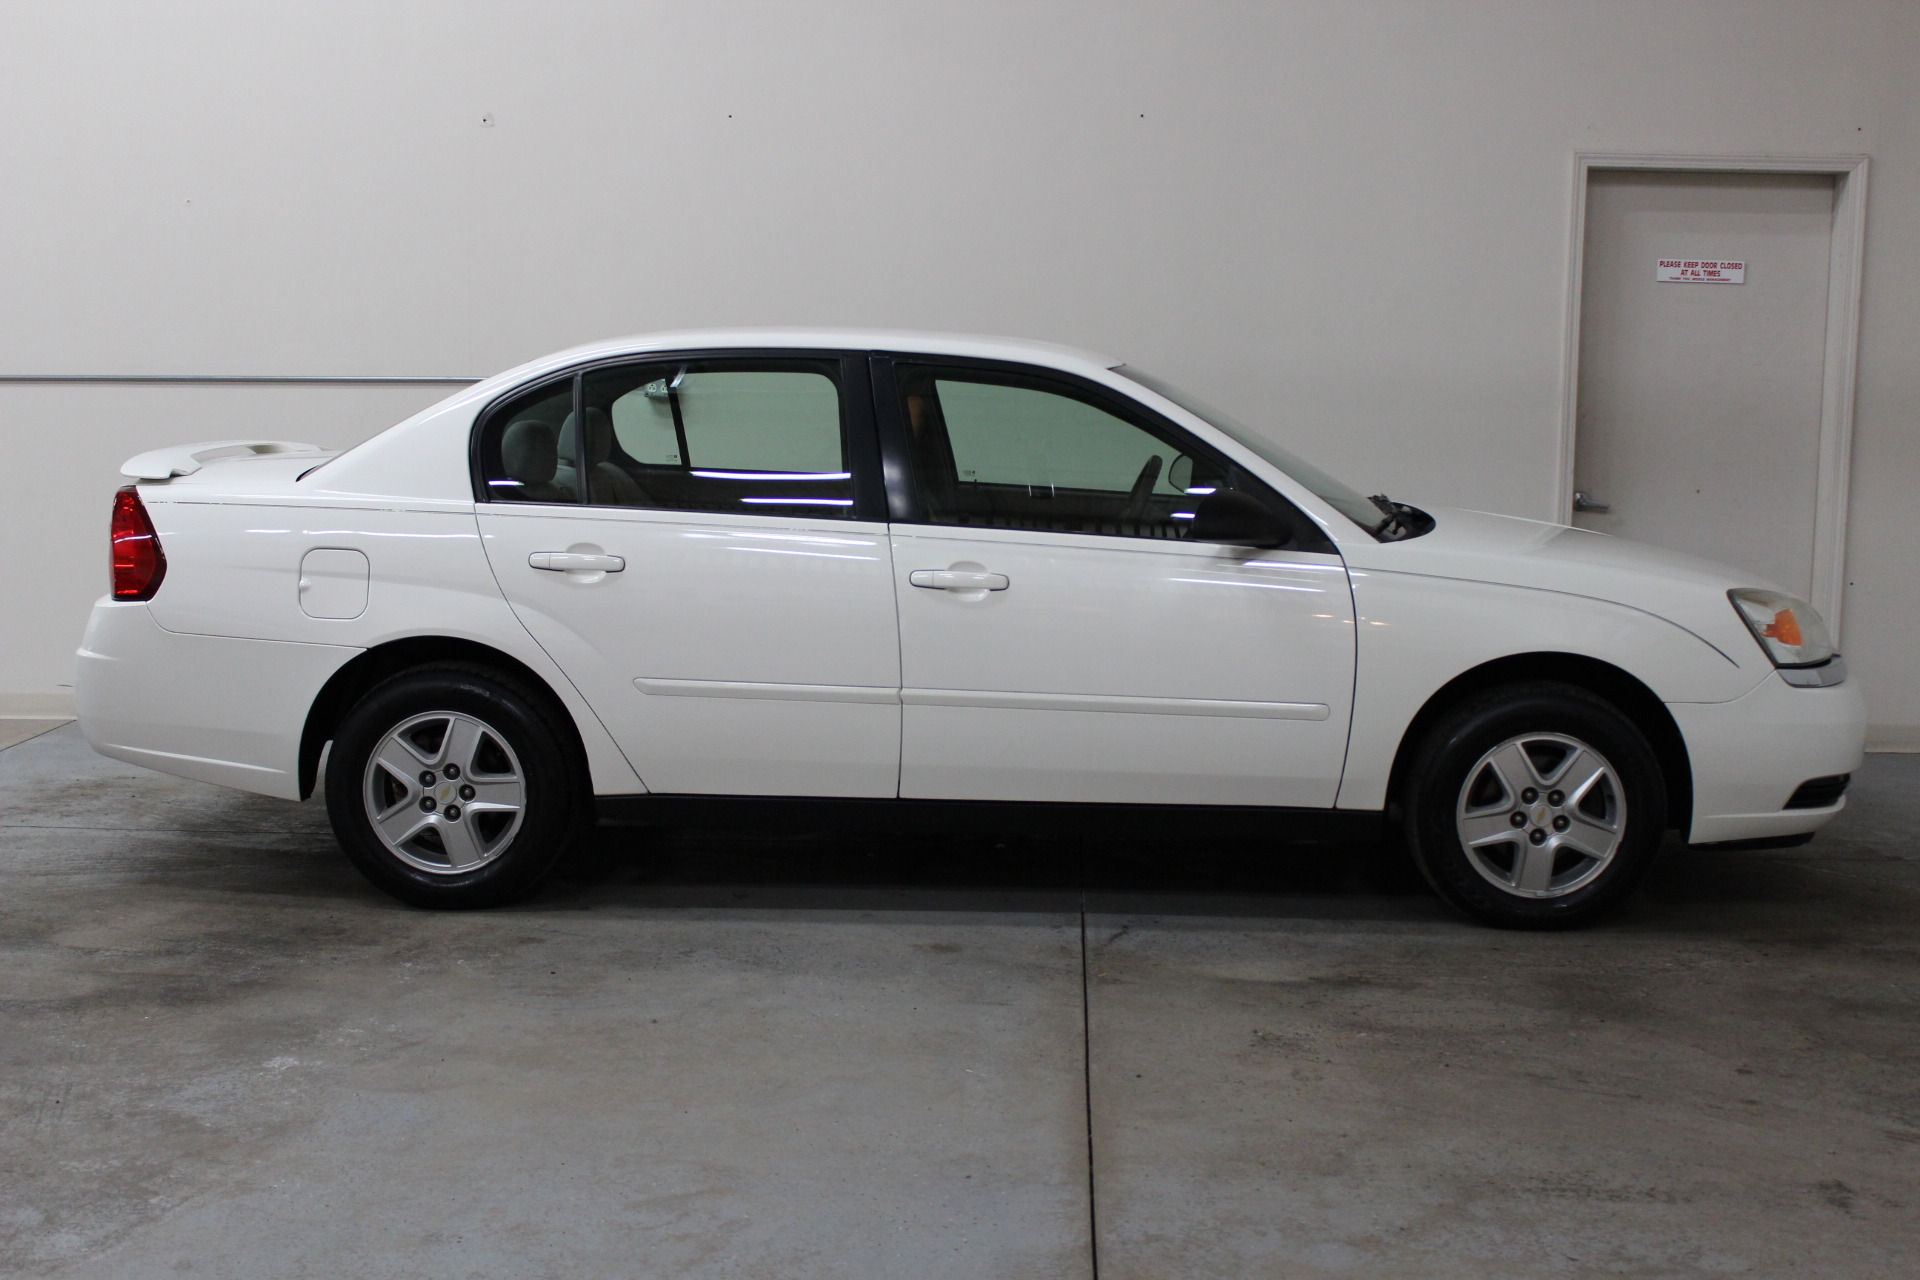 2001 Saturn LSeries Miami FL 8798579 together with 1950 Buick Super additionally 8848EF06FB6B3AF0CA2578CC001C1390 as well List Of Pros And Cons Of Bajaj Dominar 400 besides Eng cockpit. on clock tachometer 4 i